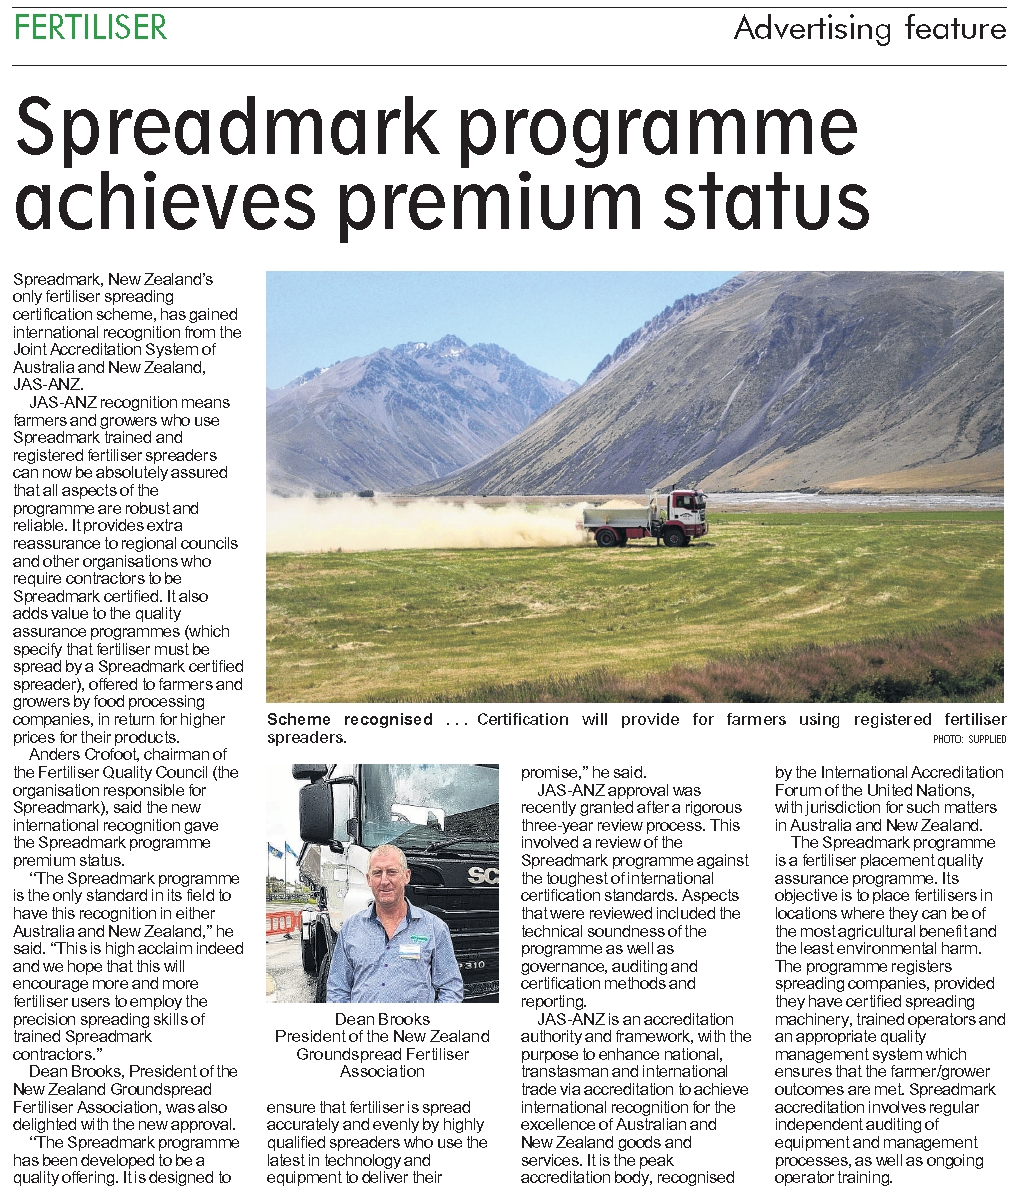 january2019-Spreadmark programme achieves premium status_1